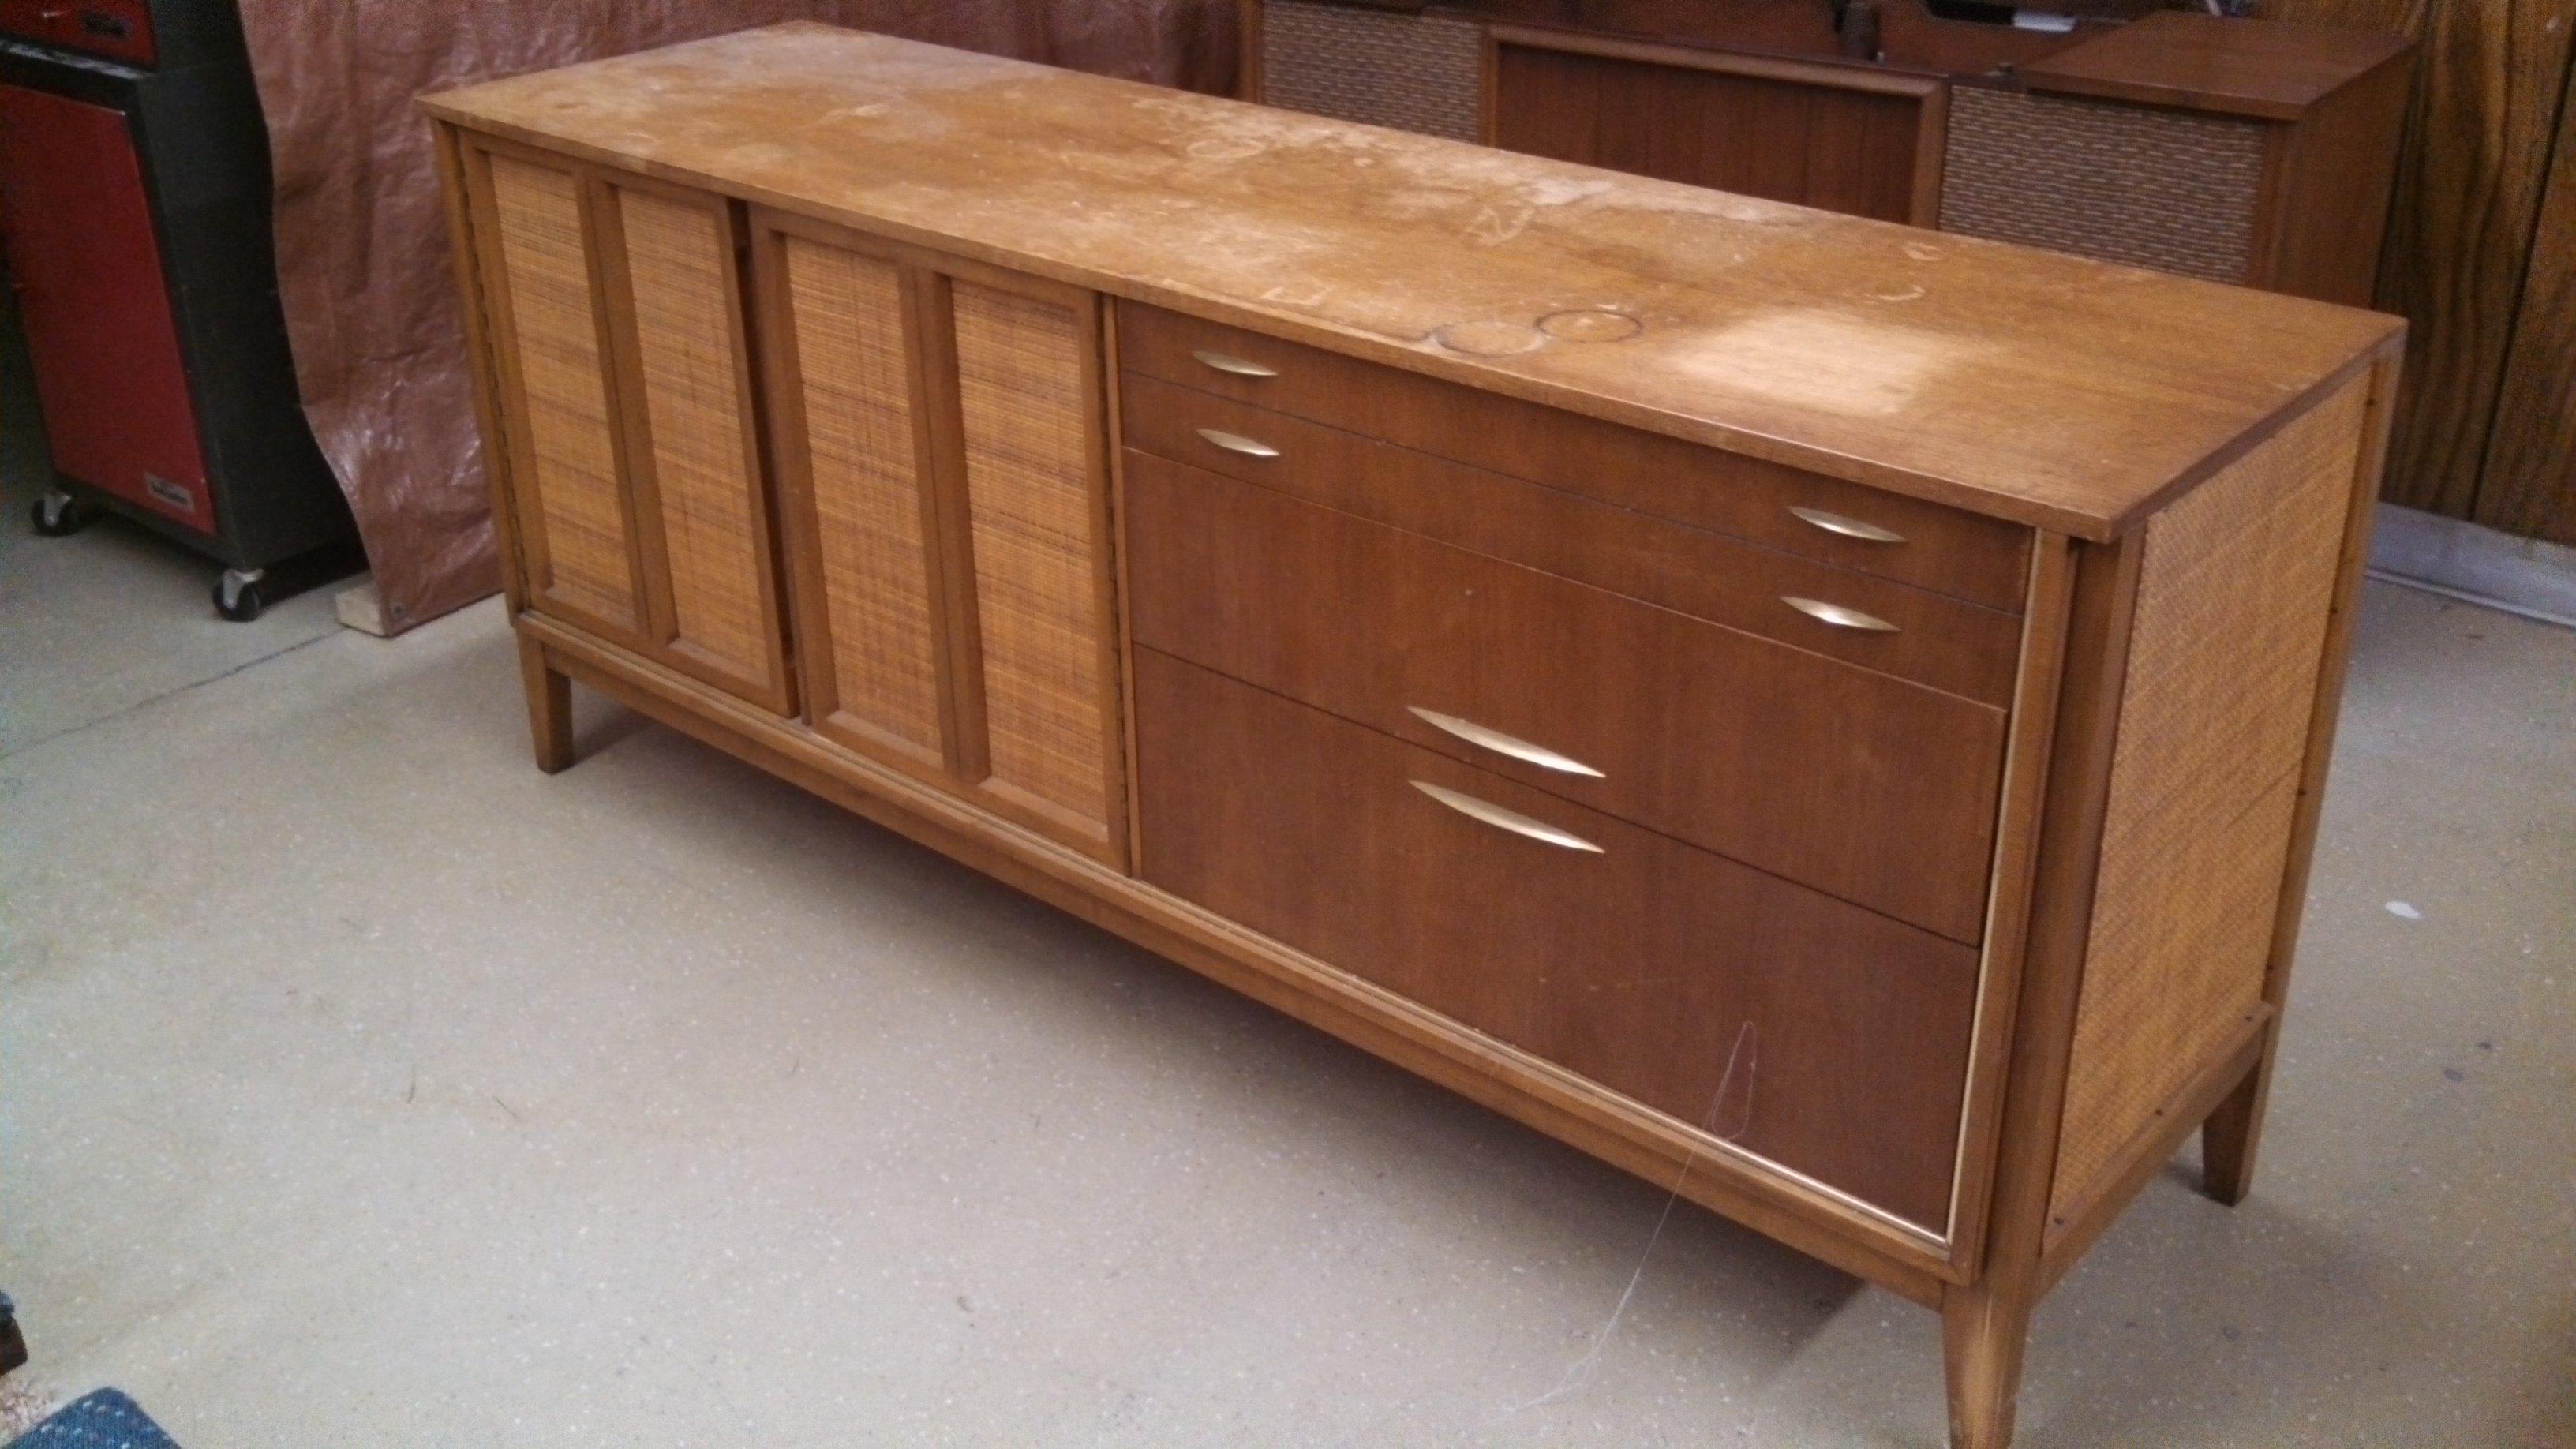 Pic 1 - West Michigan Furniture Co. credenza as found, stains on top, compression damage, split front leg.